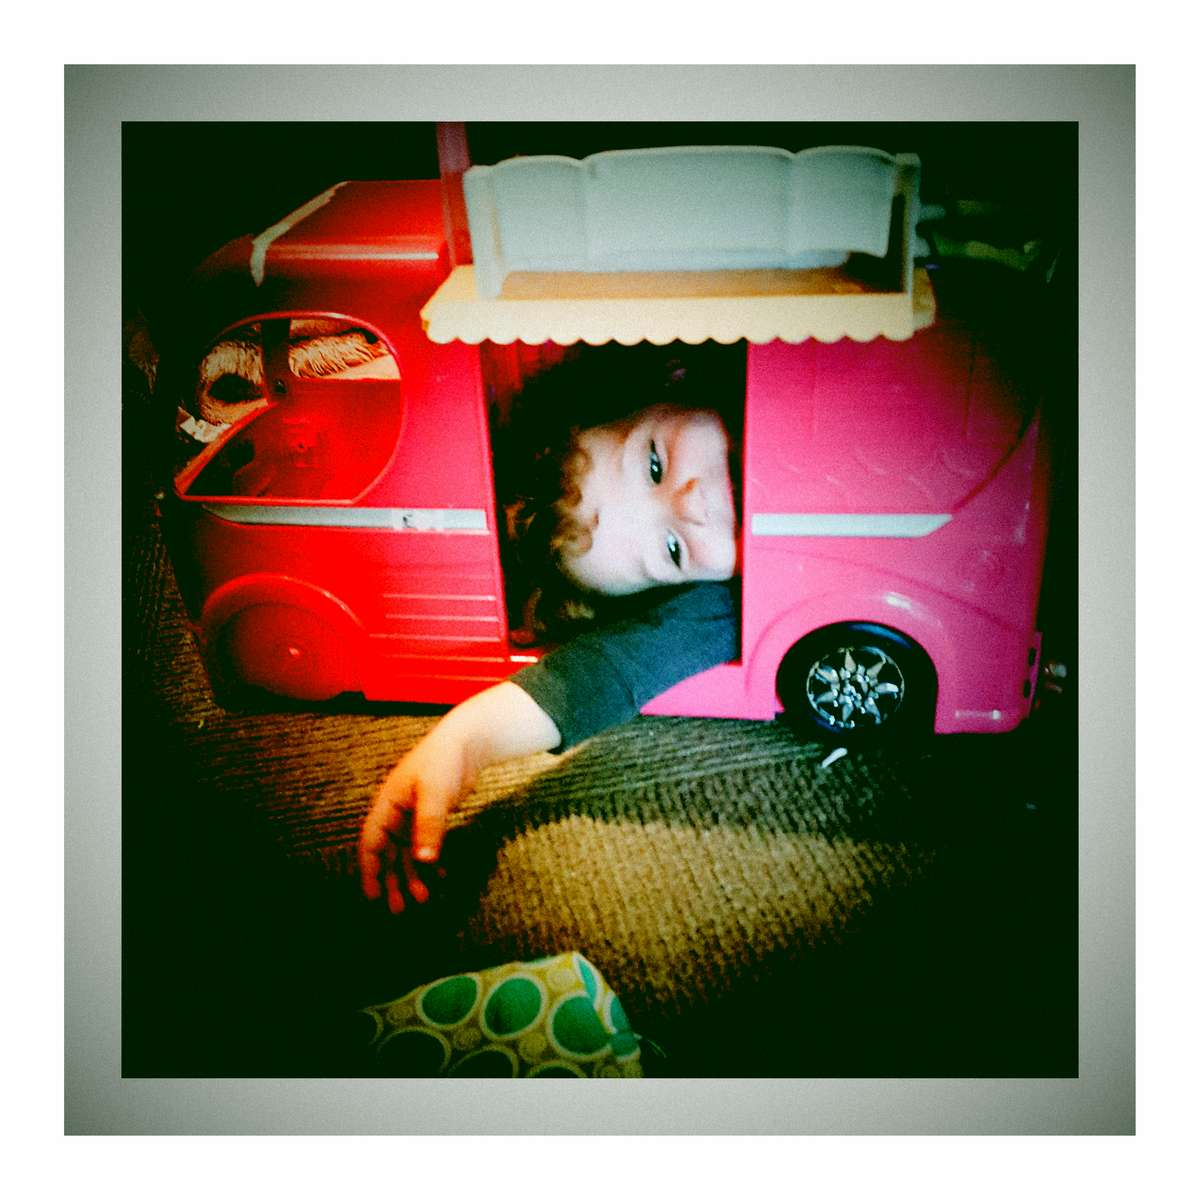 Luka got his head stuck in the Barbie RV. August 2017.